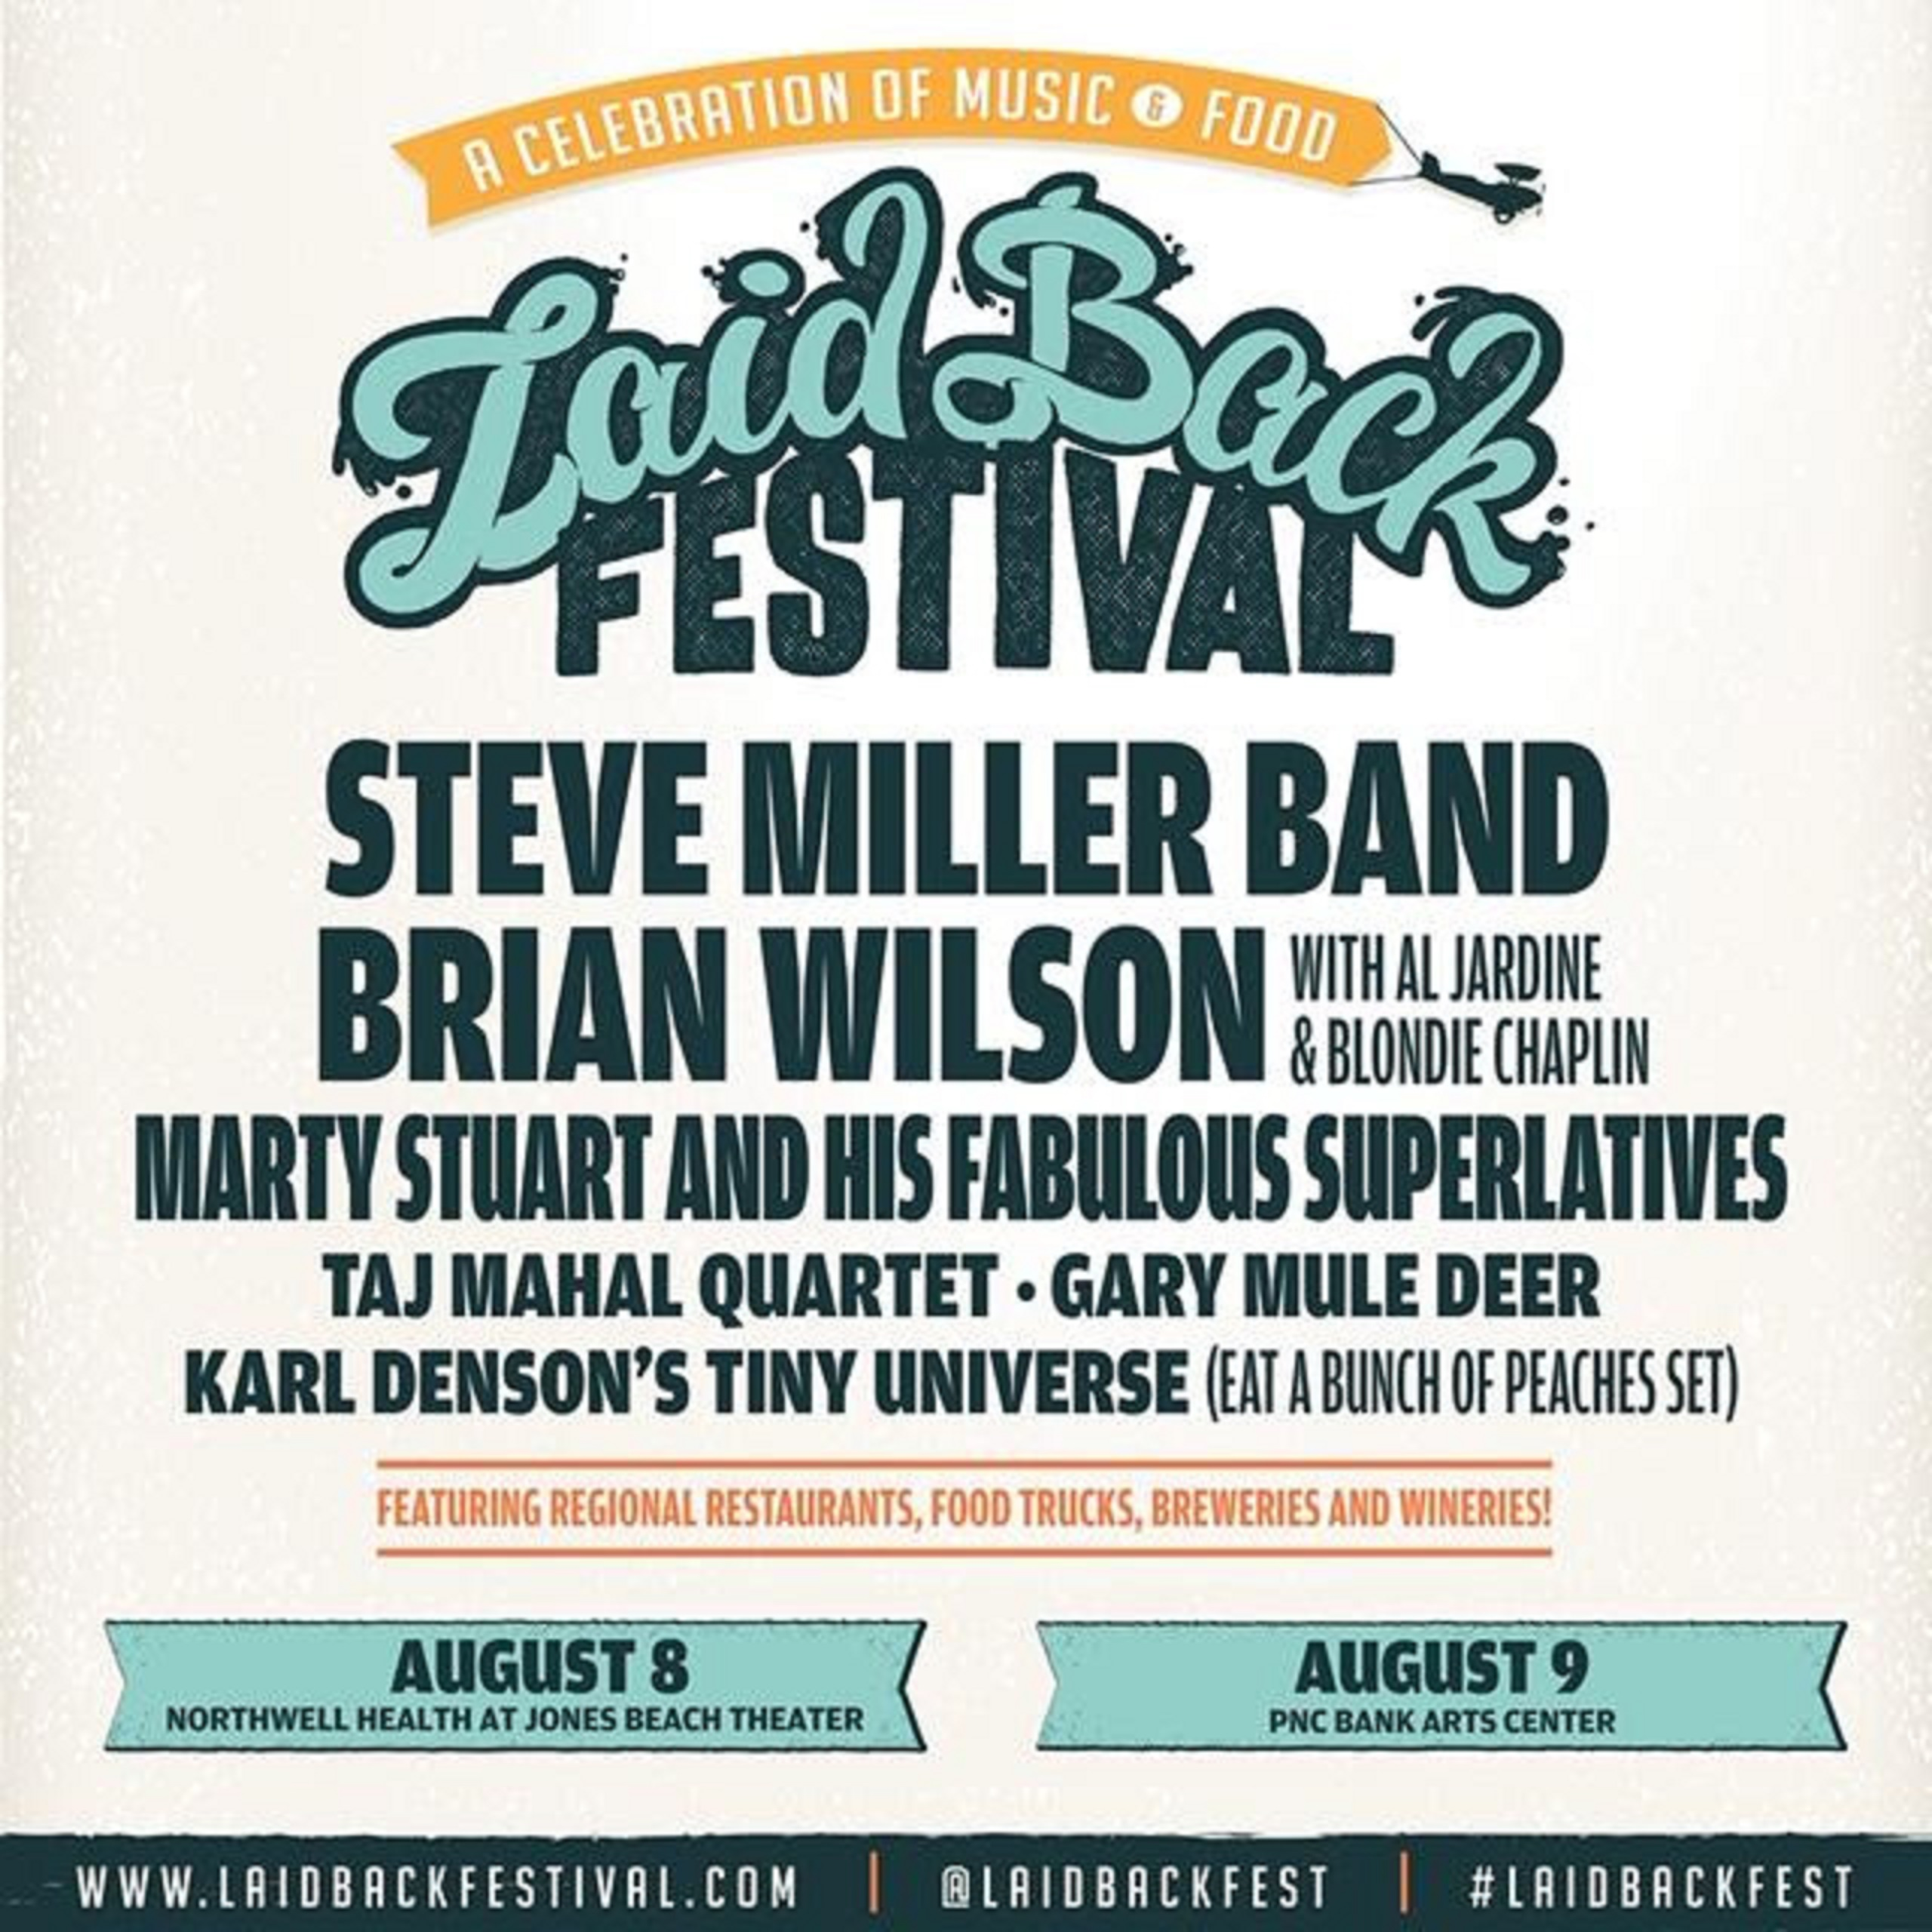 Laid Back fest announces 2020 shows - Brian Wilson, Steve Miller and more